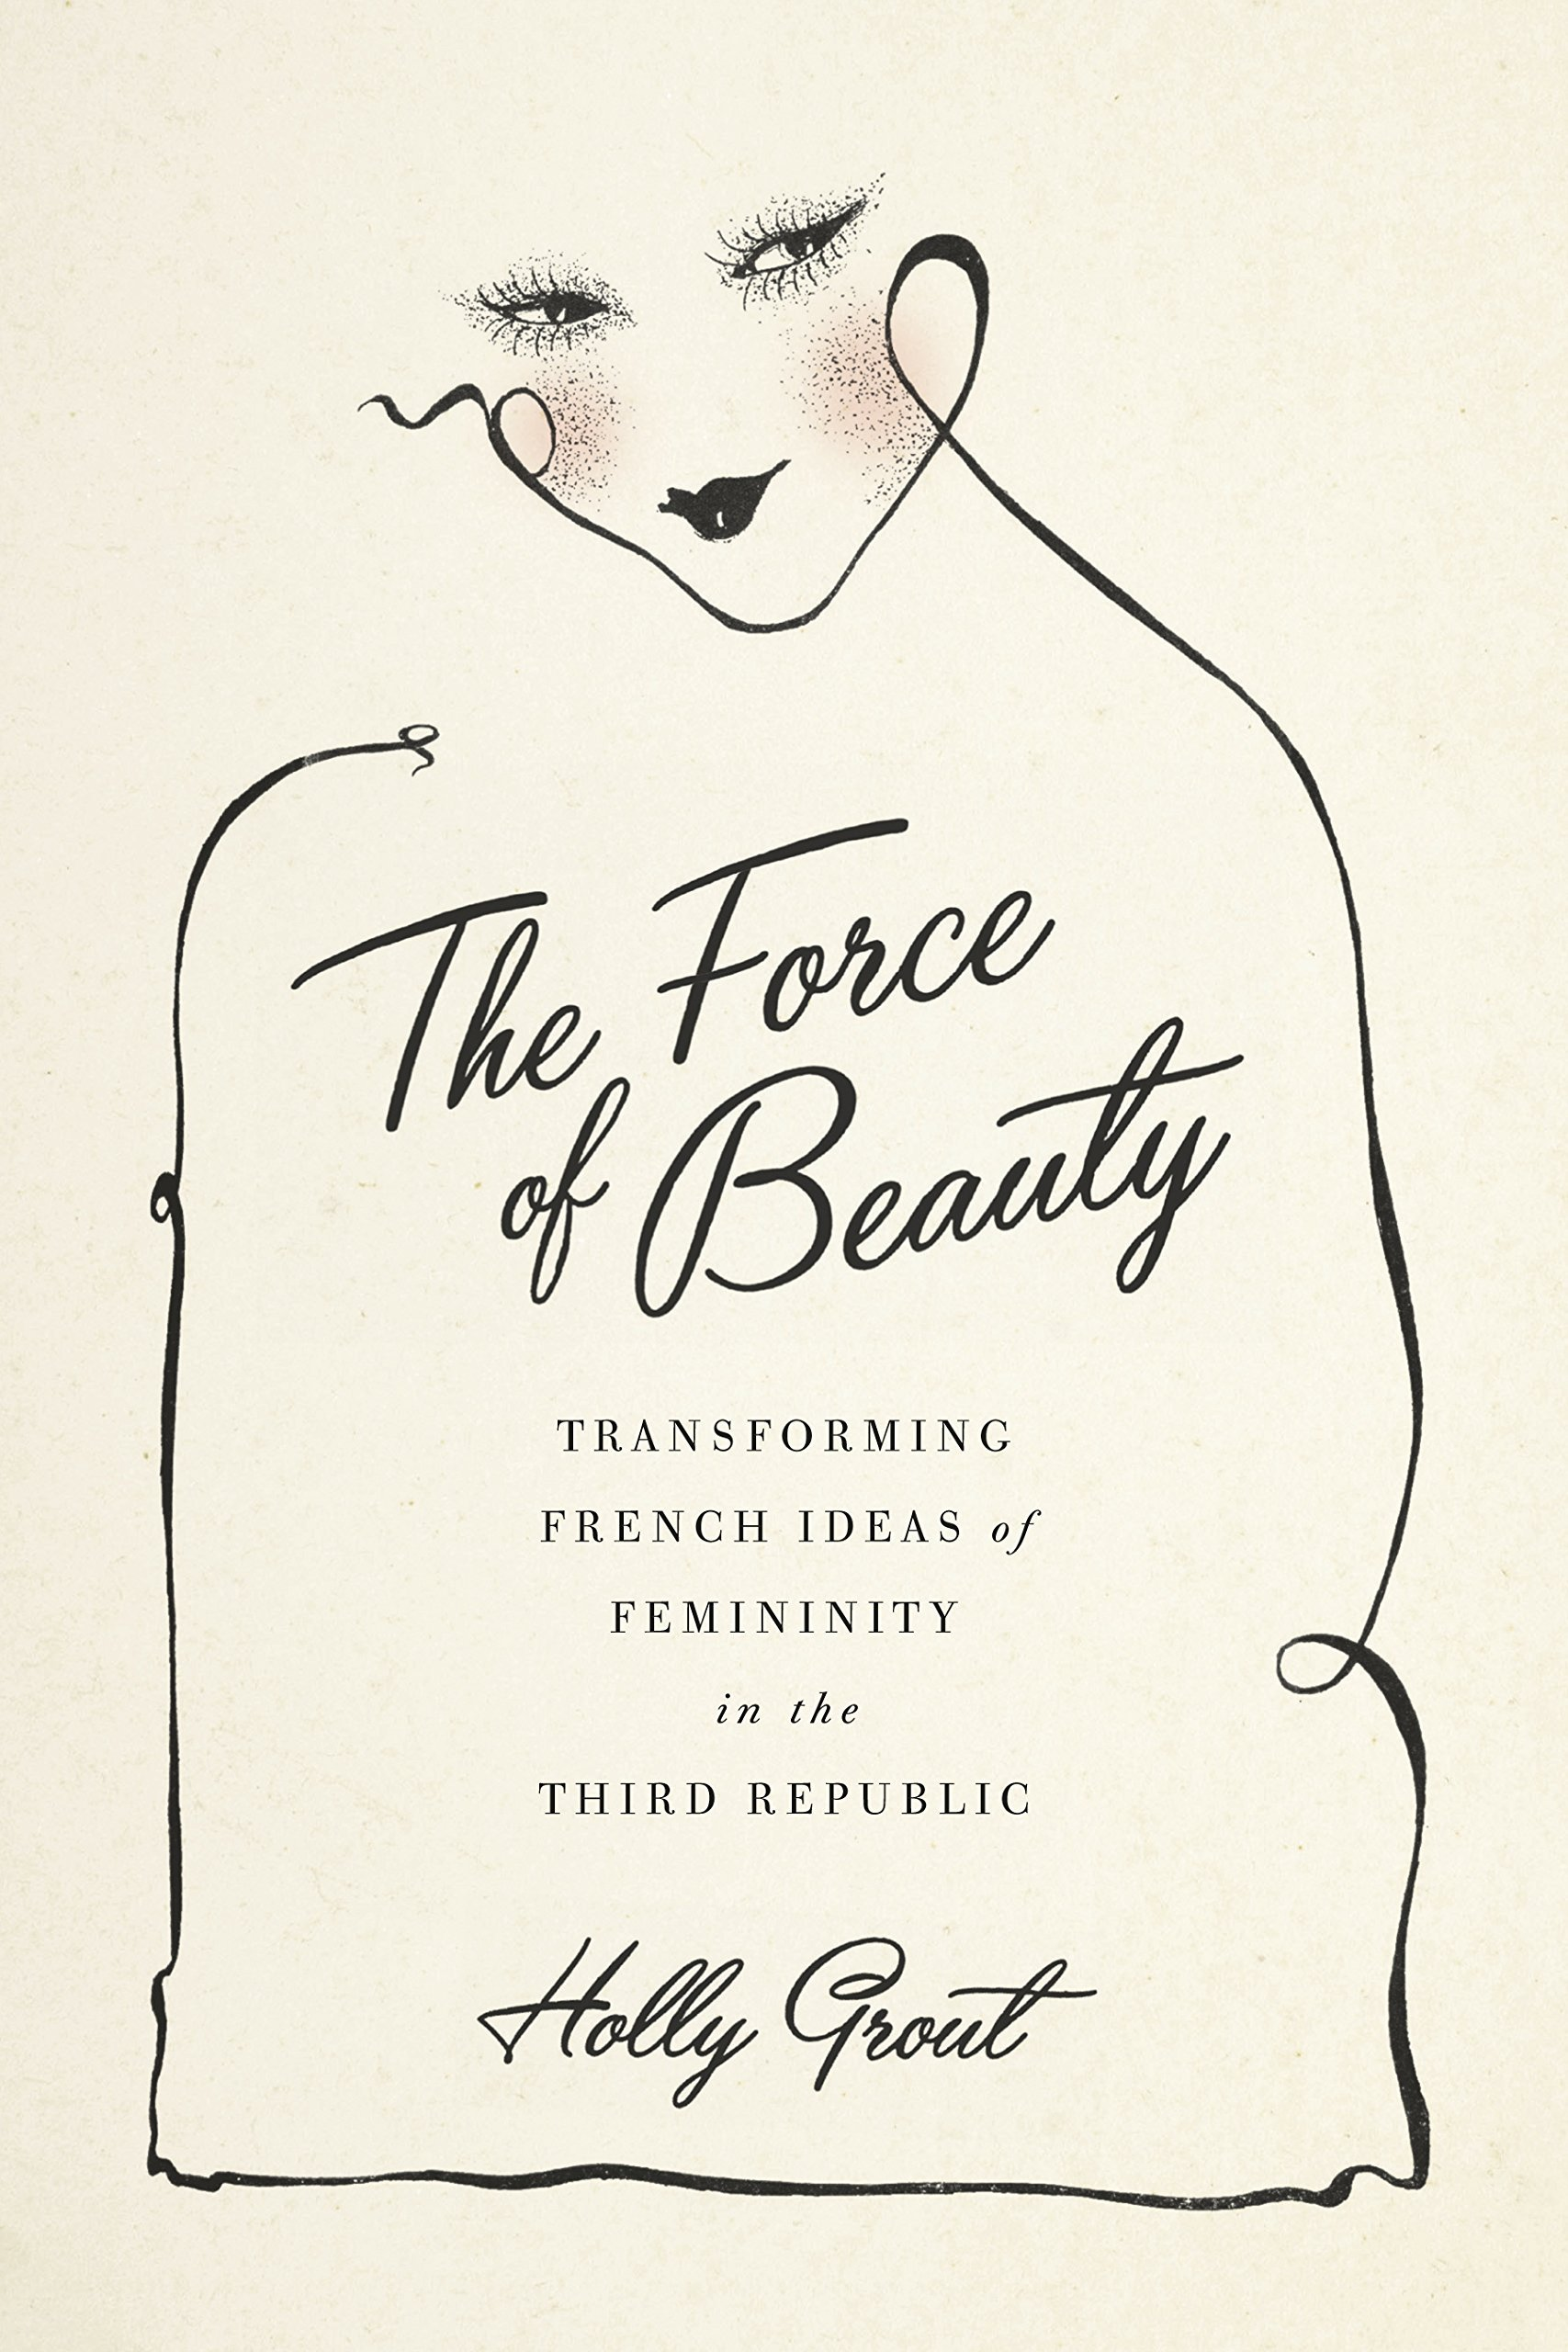 The Force of Beauty Transforming French Ideas of Femininity in the Third Republic